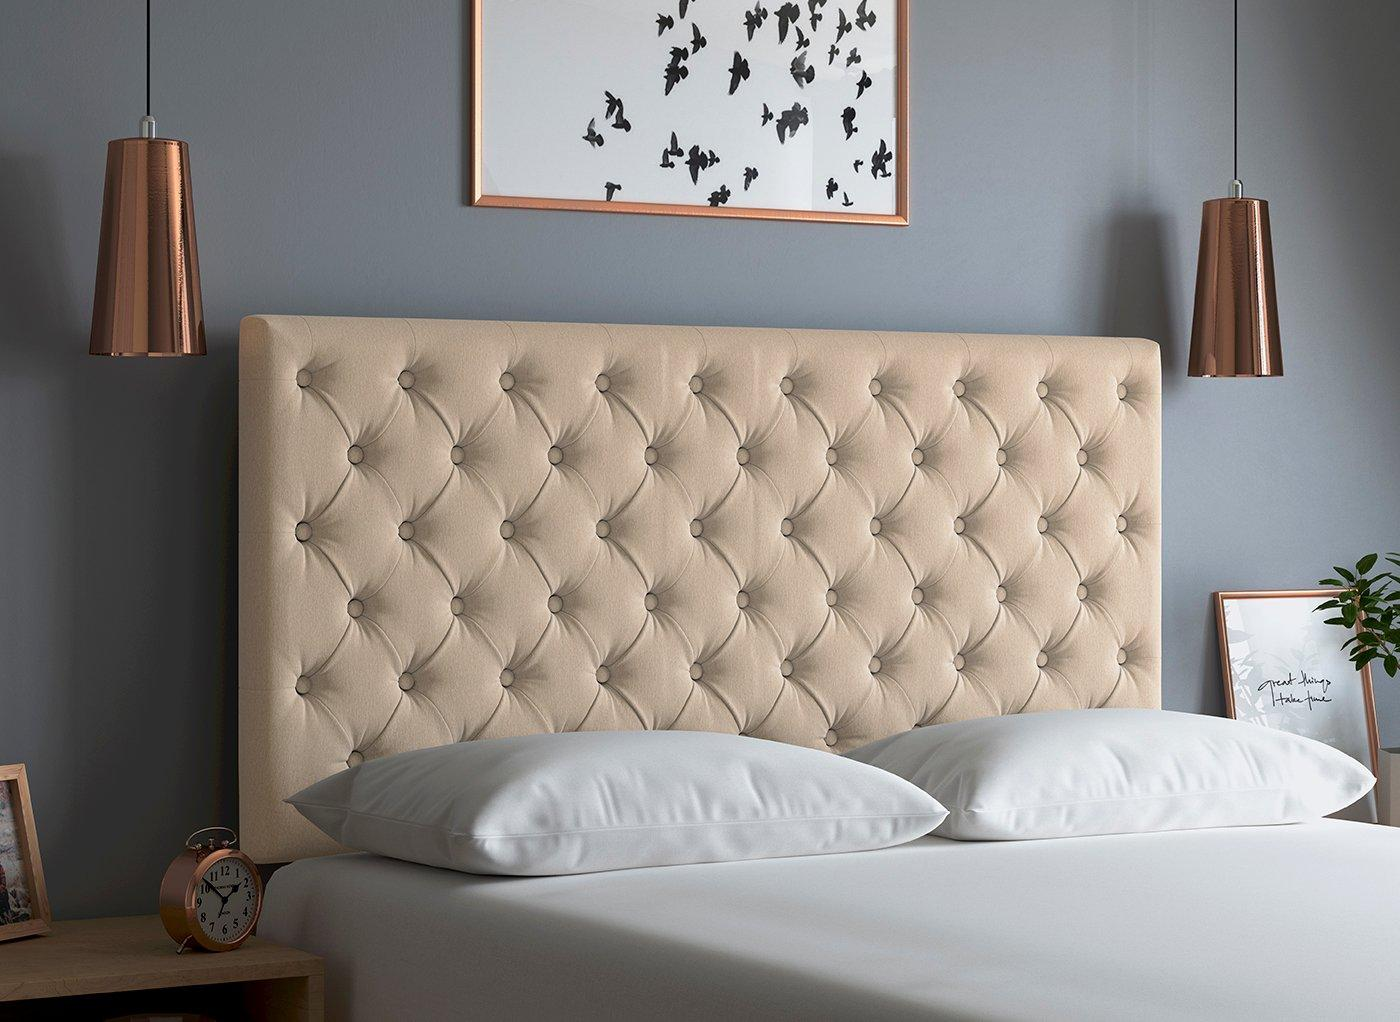 Ripley Headboard 5'0 King OATMEAL